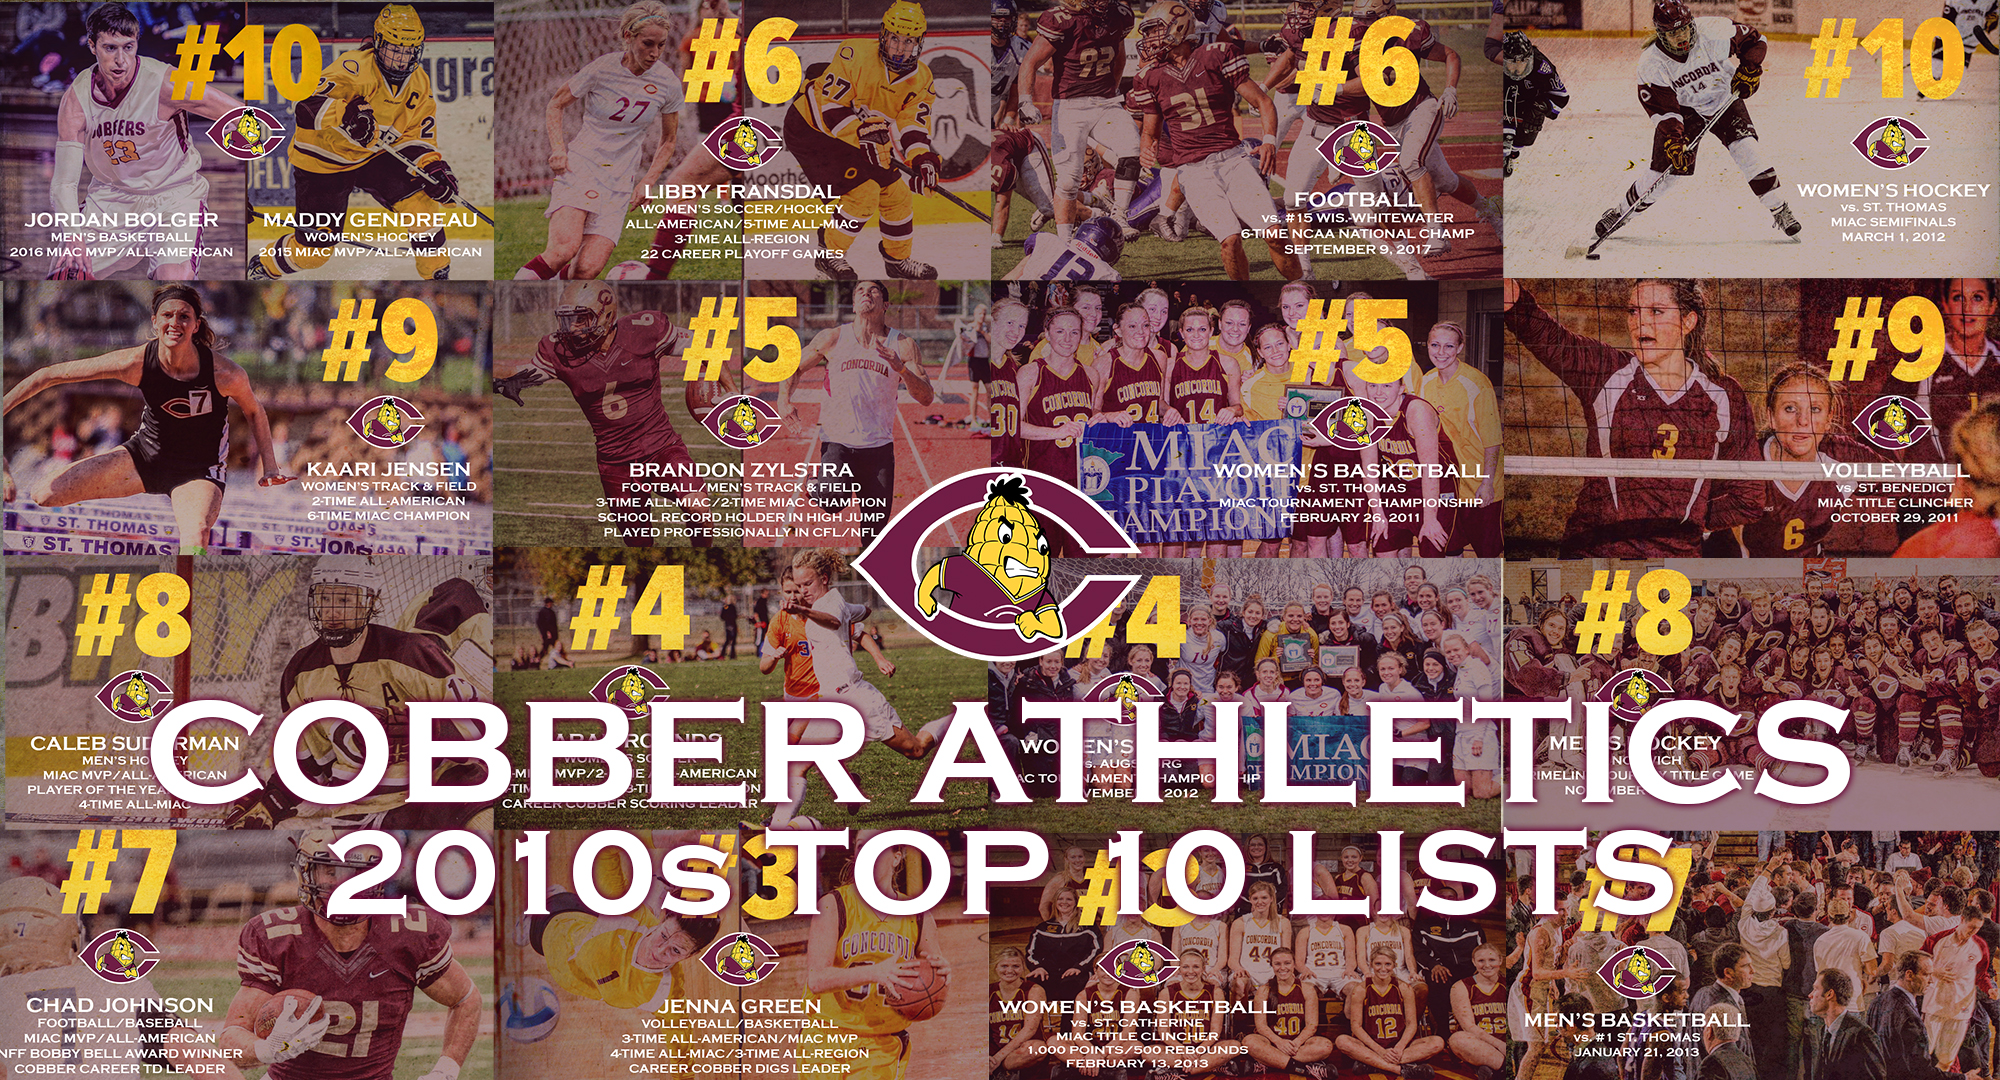 Cobber Athletics Top 10 Lists from the 2010s